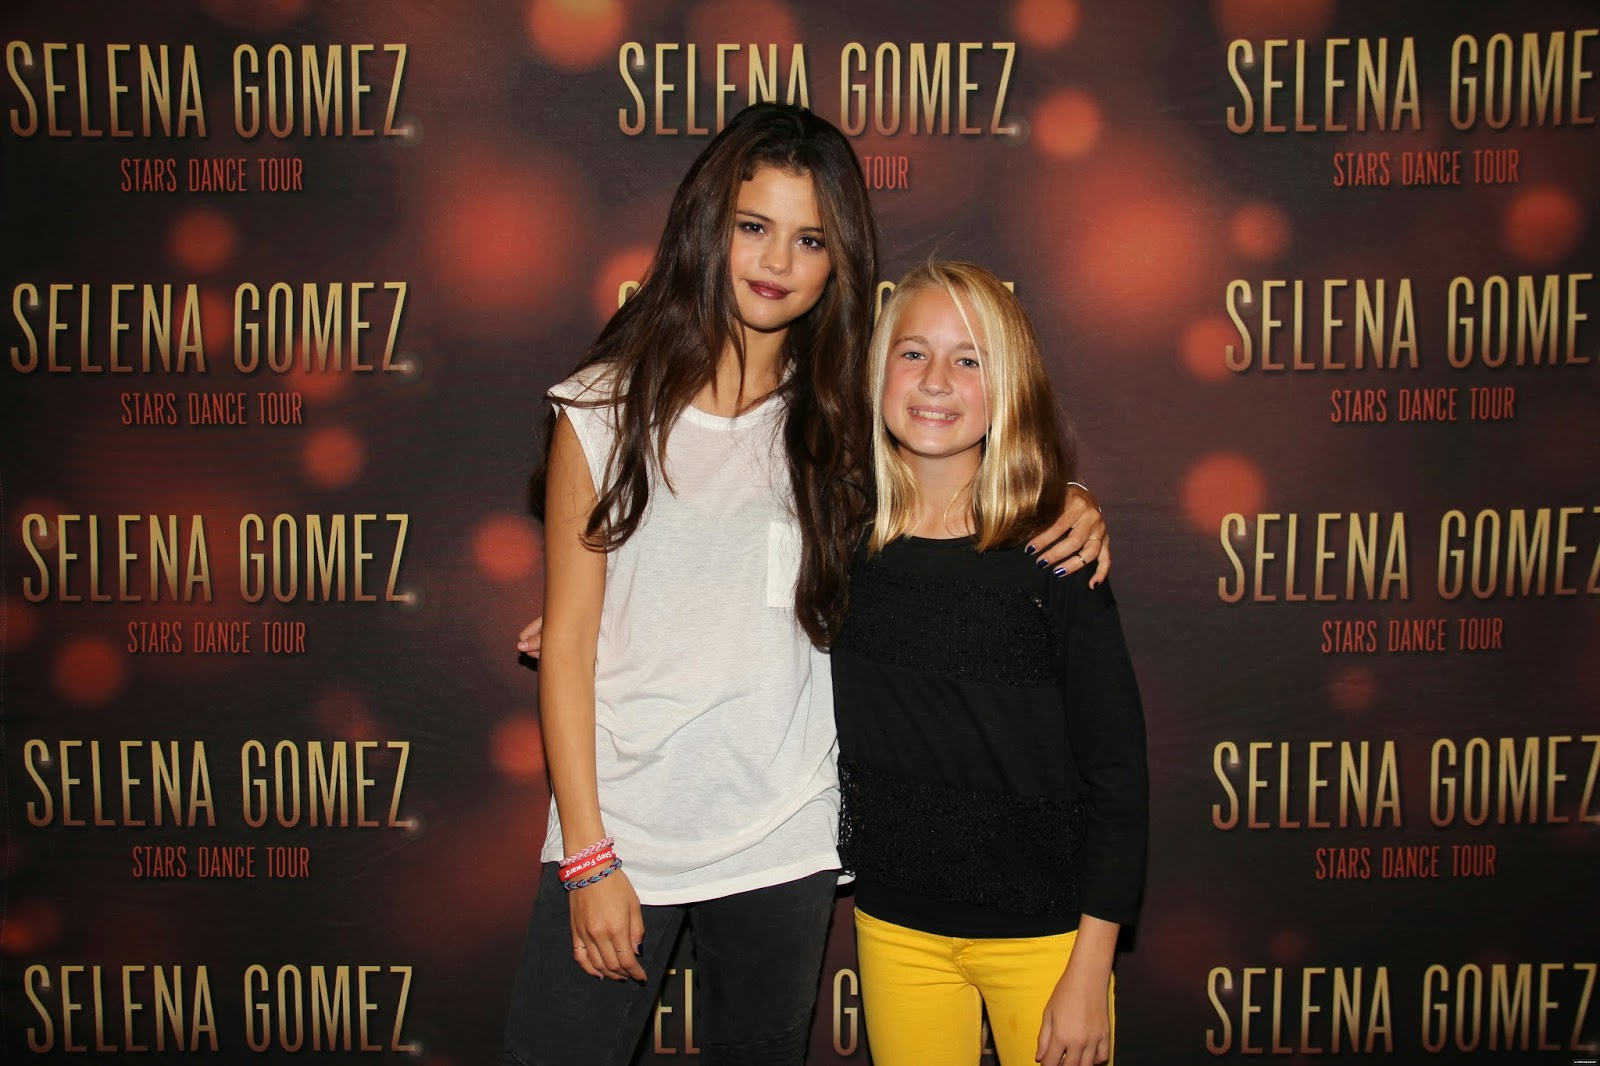 Selena gomez style stars dance world tour meet greet fairfax stars dance world tour meet greet fairfax virginia oct 10 2013 m4hsunfo